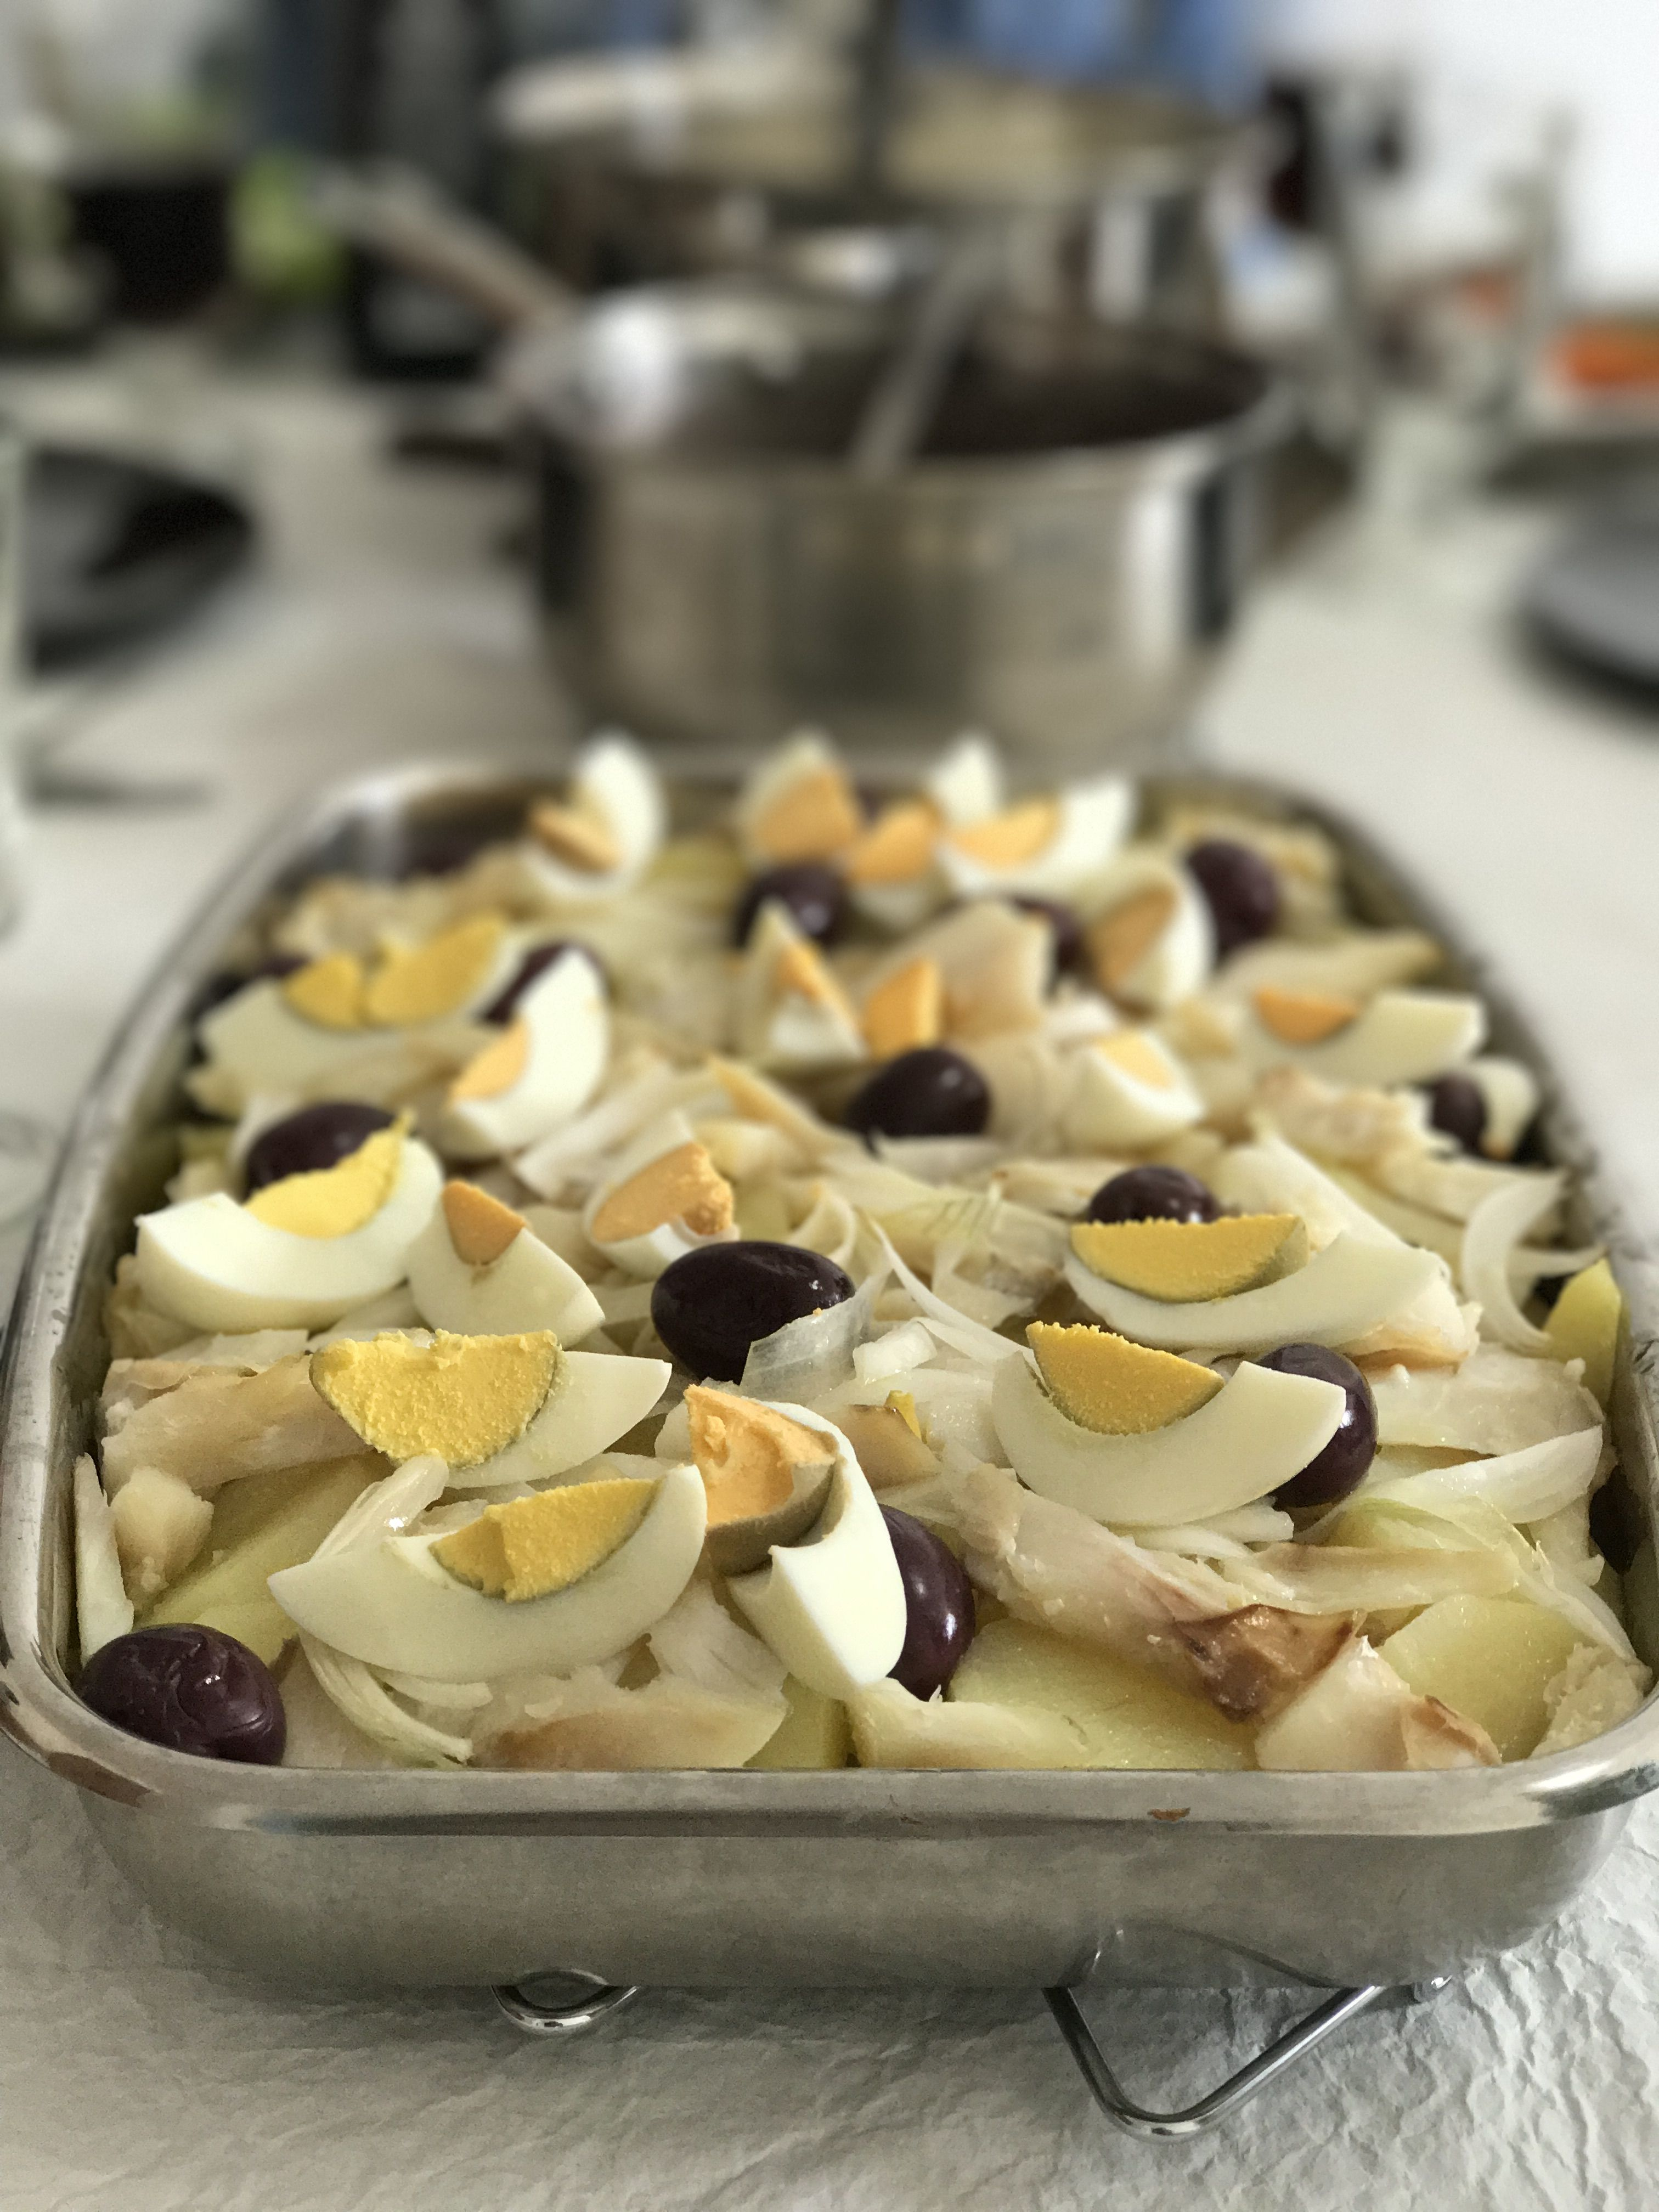 Salt cod, onions and potatoes. My mom's special recipe.🍴